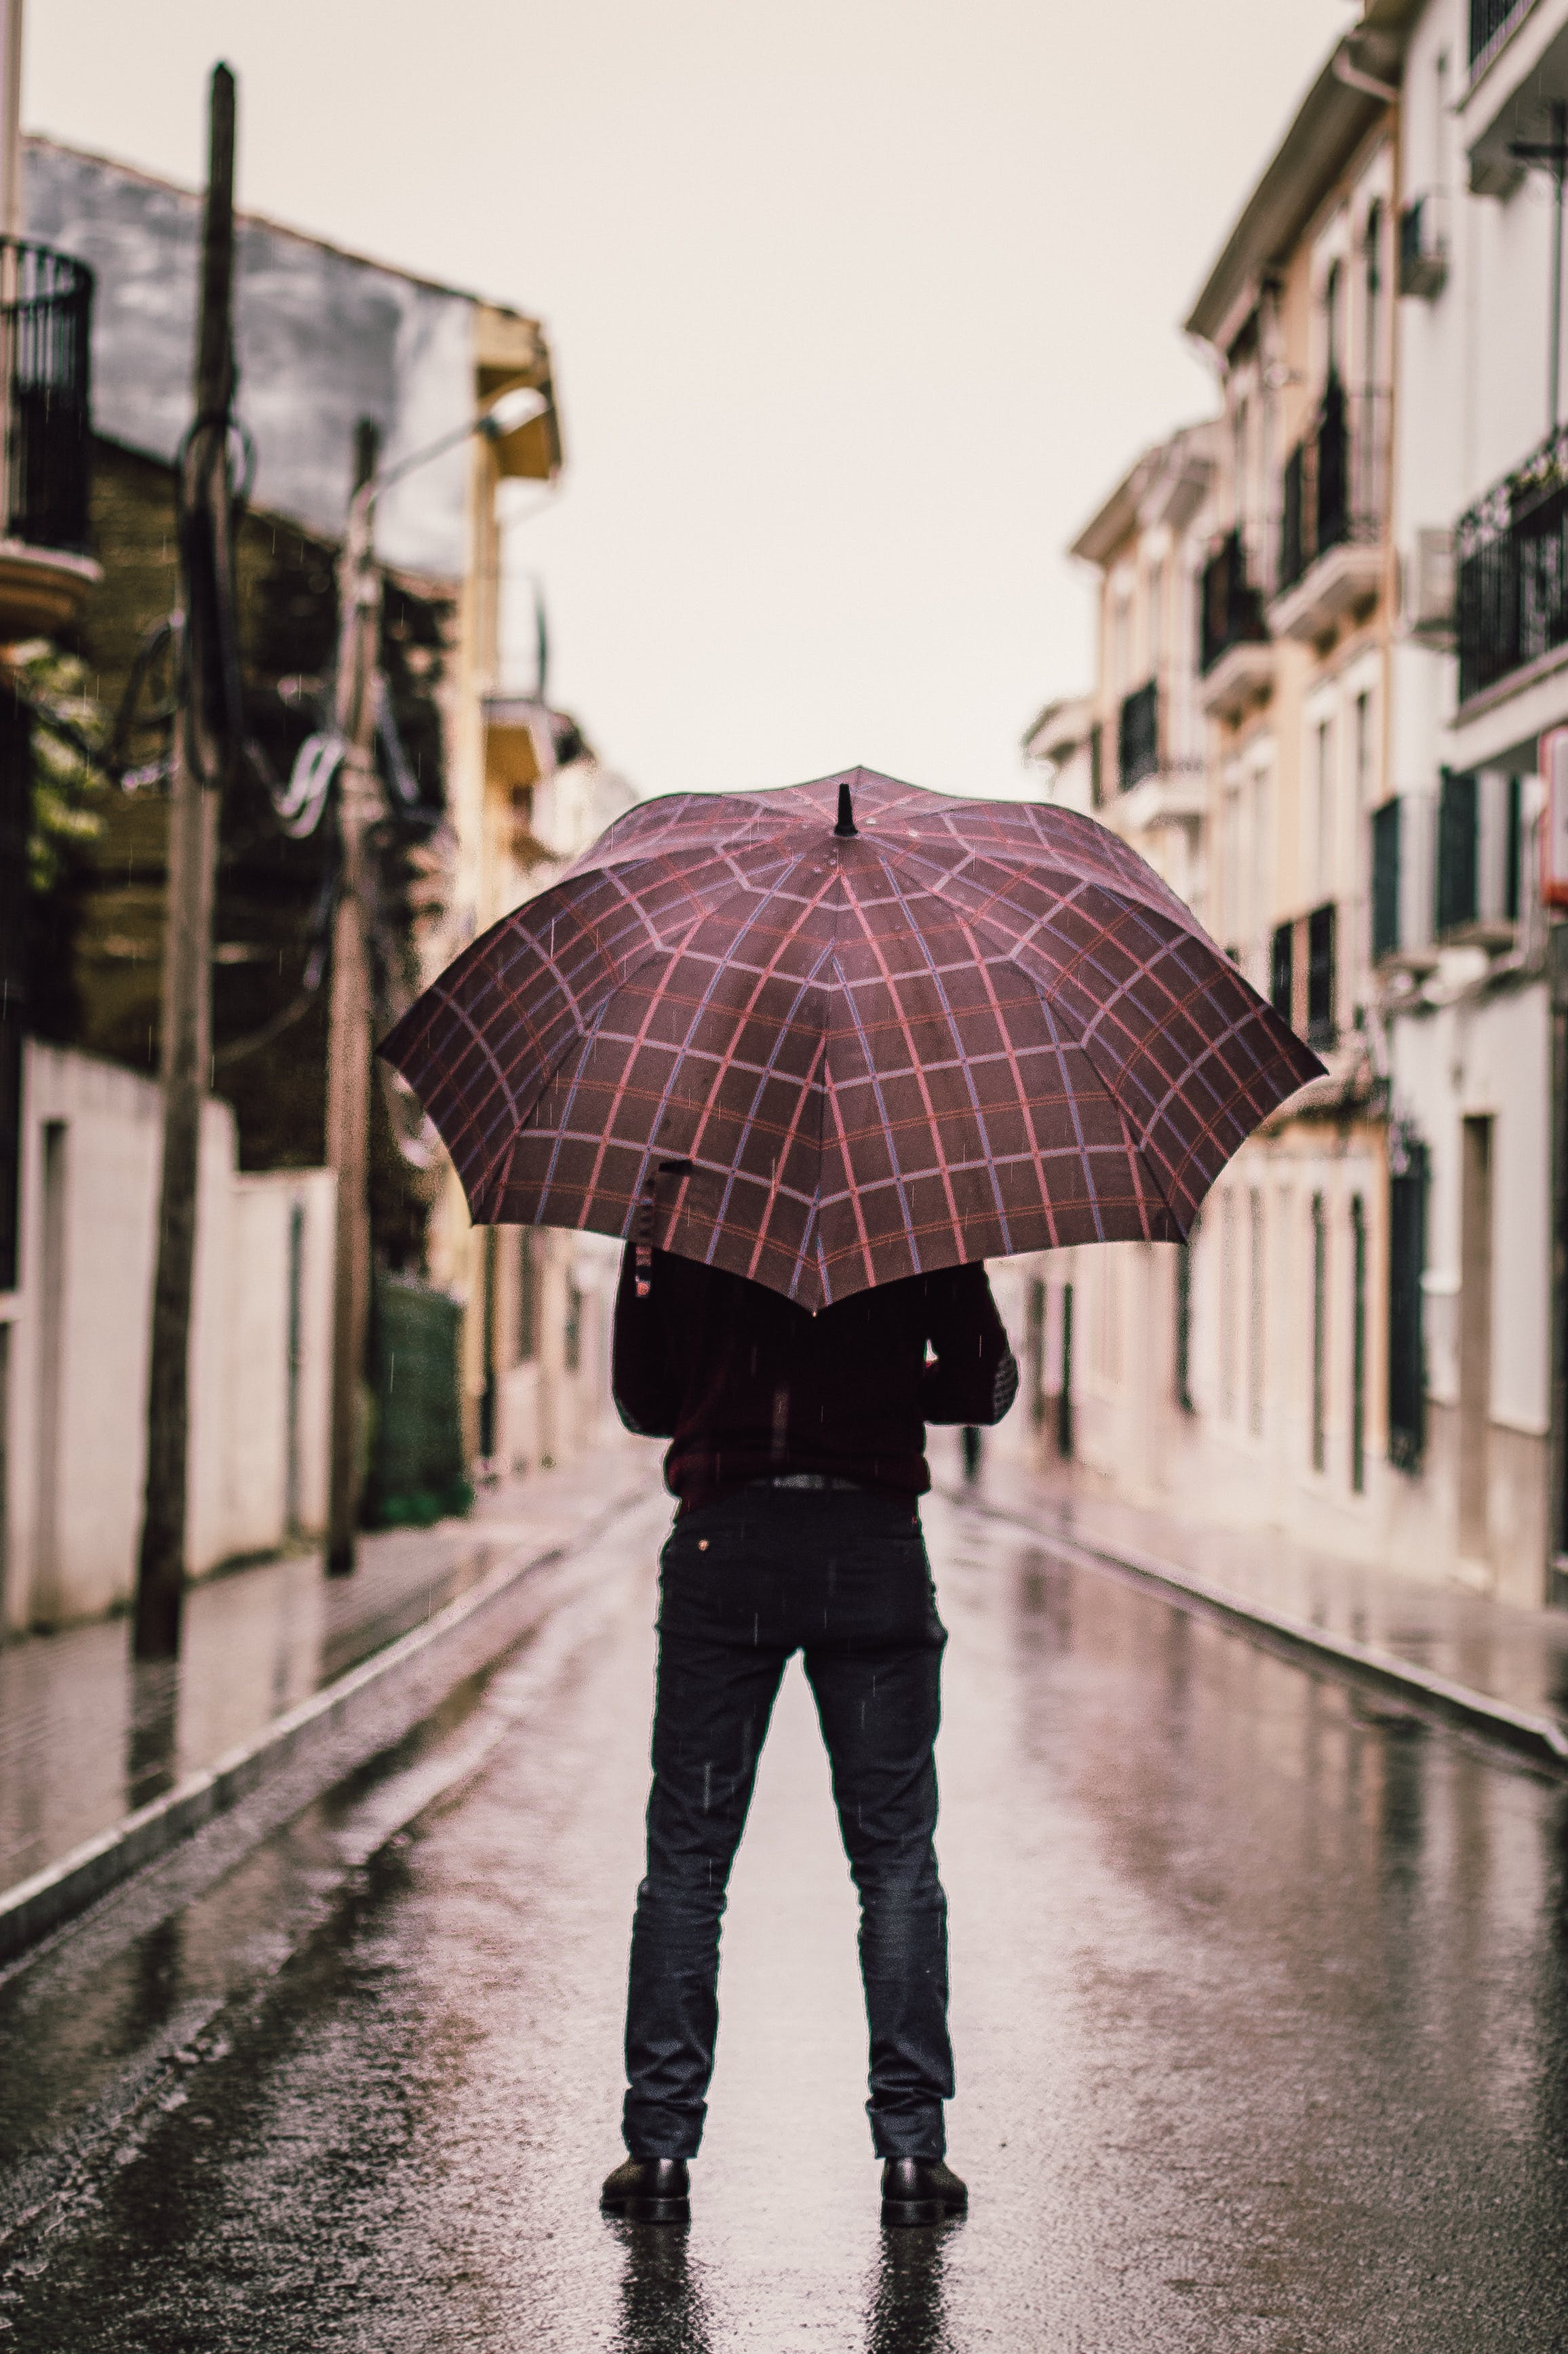 Person Wearing Black Pants Holding Umbrella Standing On Road